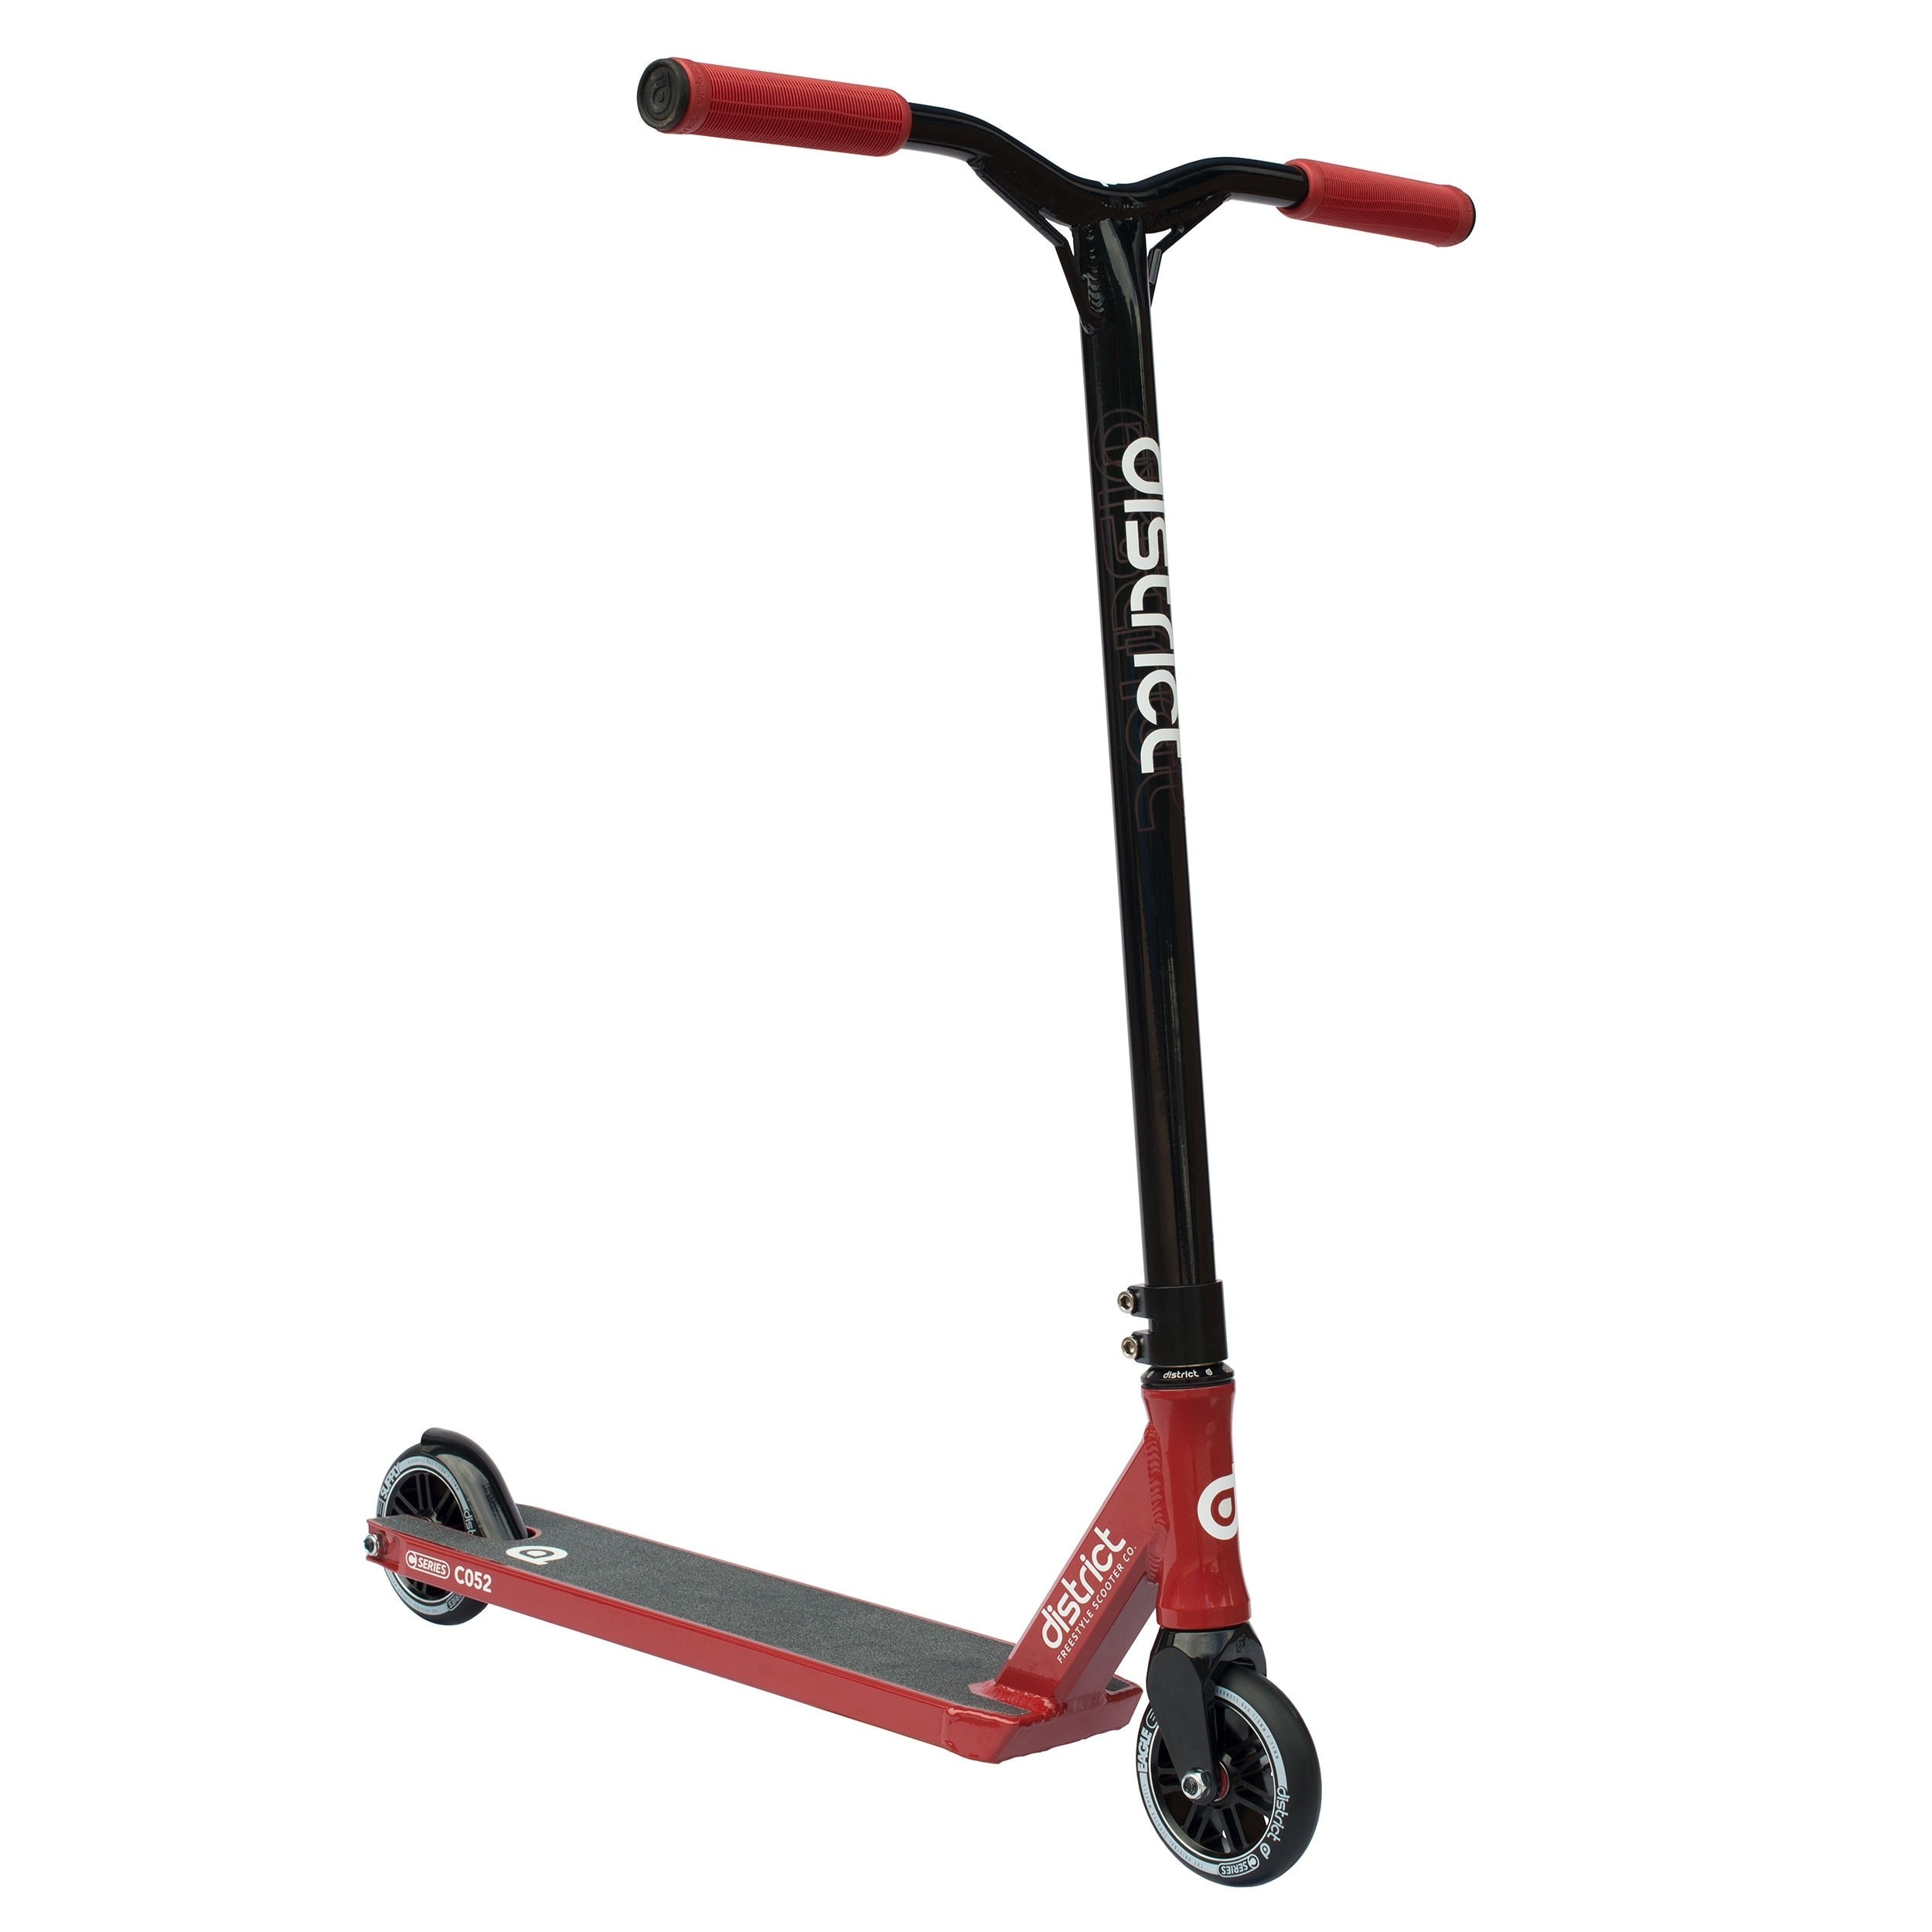 Image of District 2017 C-Series C052 Complete Scooter - Red/Black